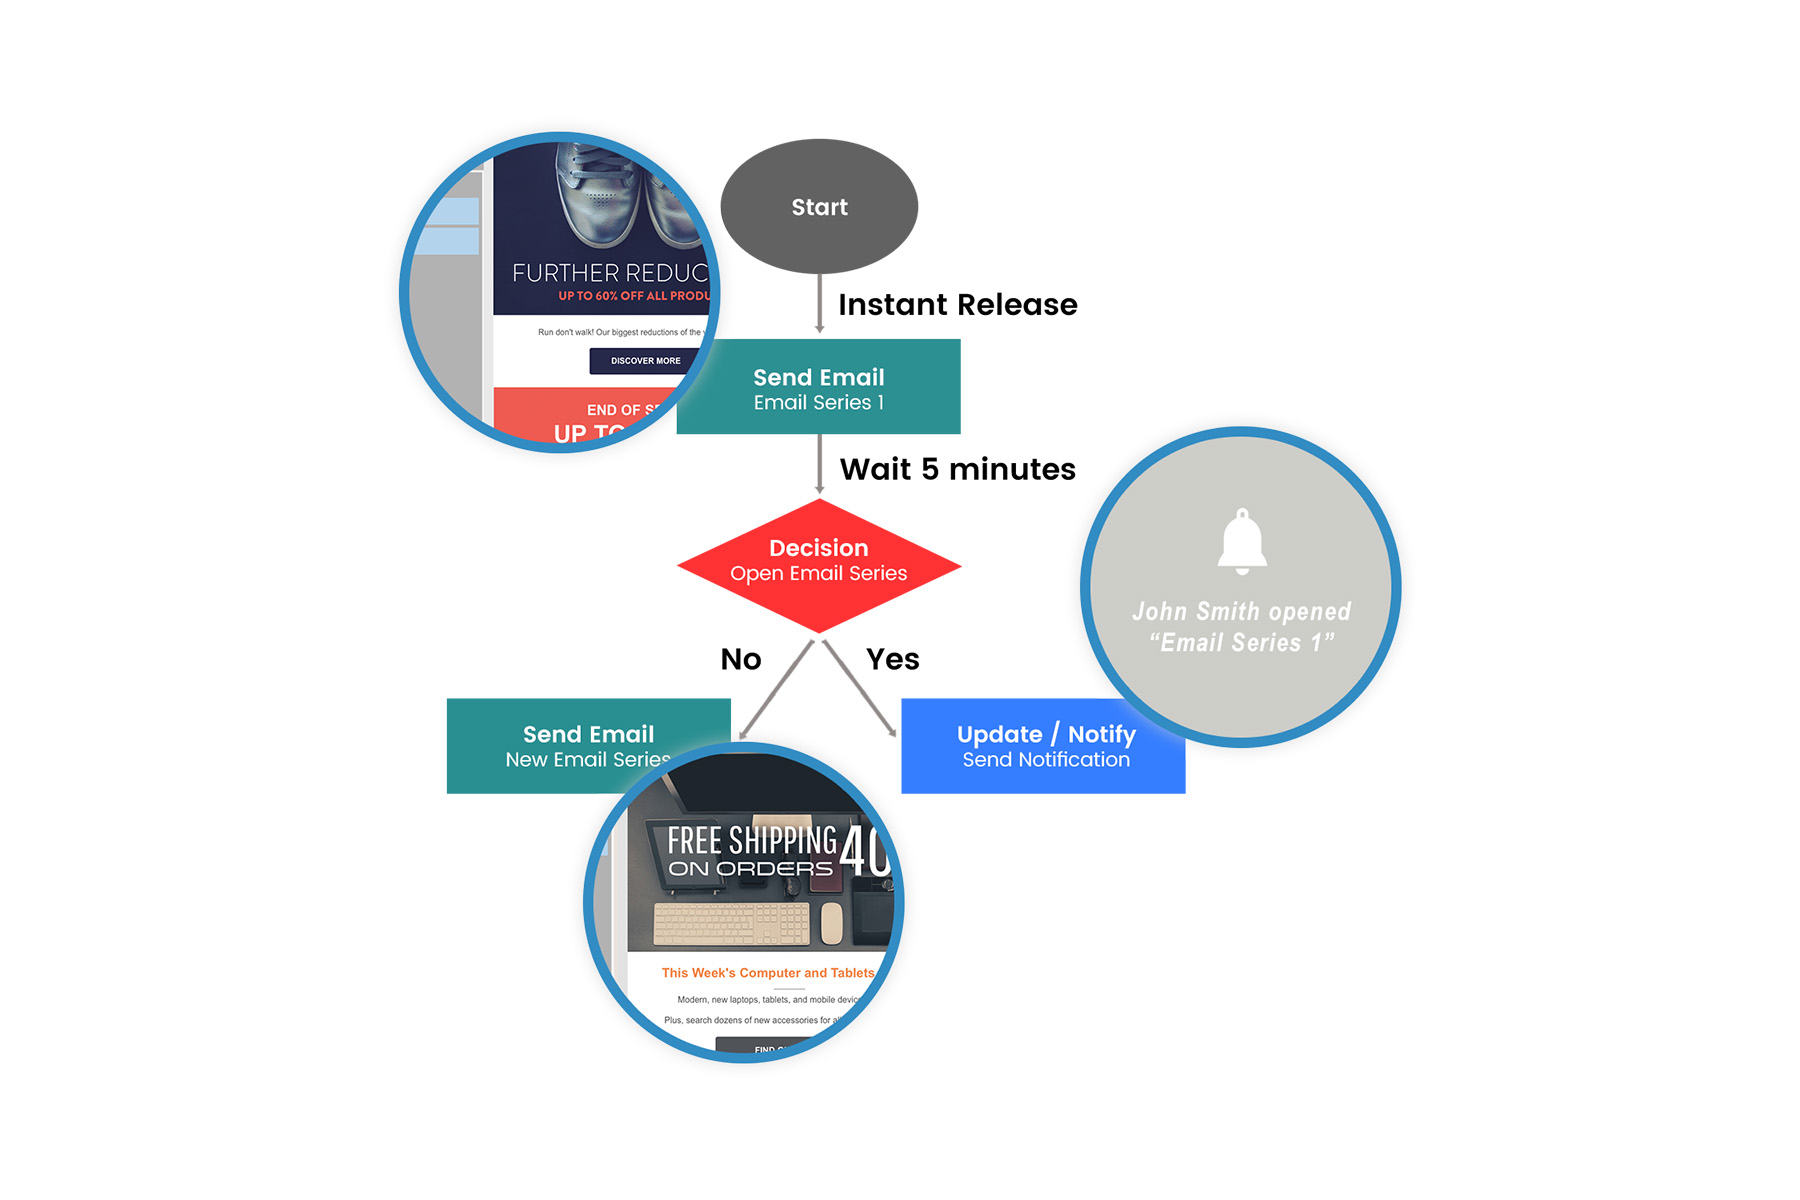 Map out the perfect customer journey with the visual campaign workflow designer and lead recipients down a highly personalized path.